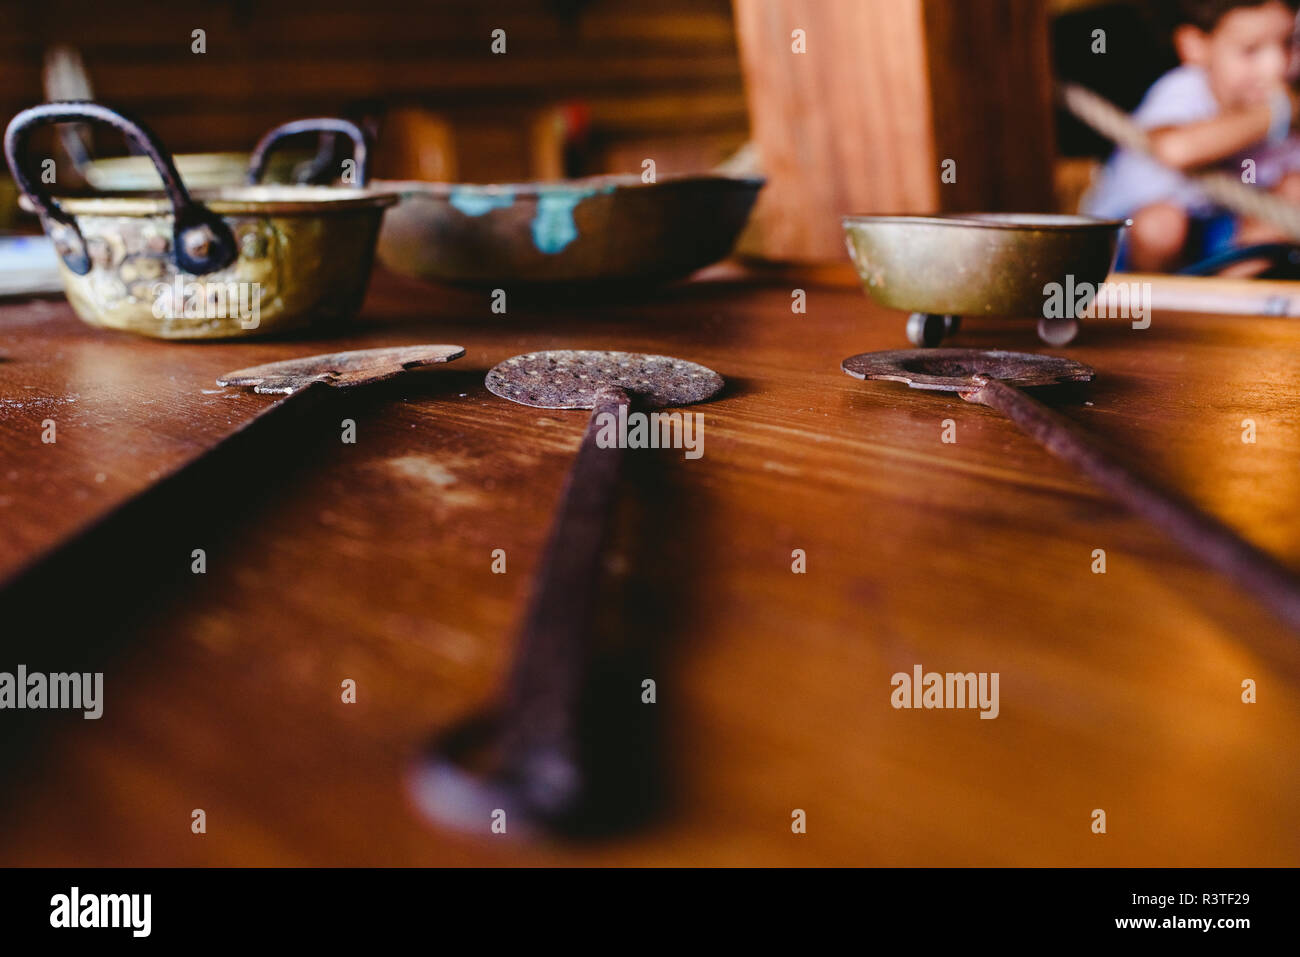 Old kitchen utensils on an old wooden table. - Stock Image